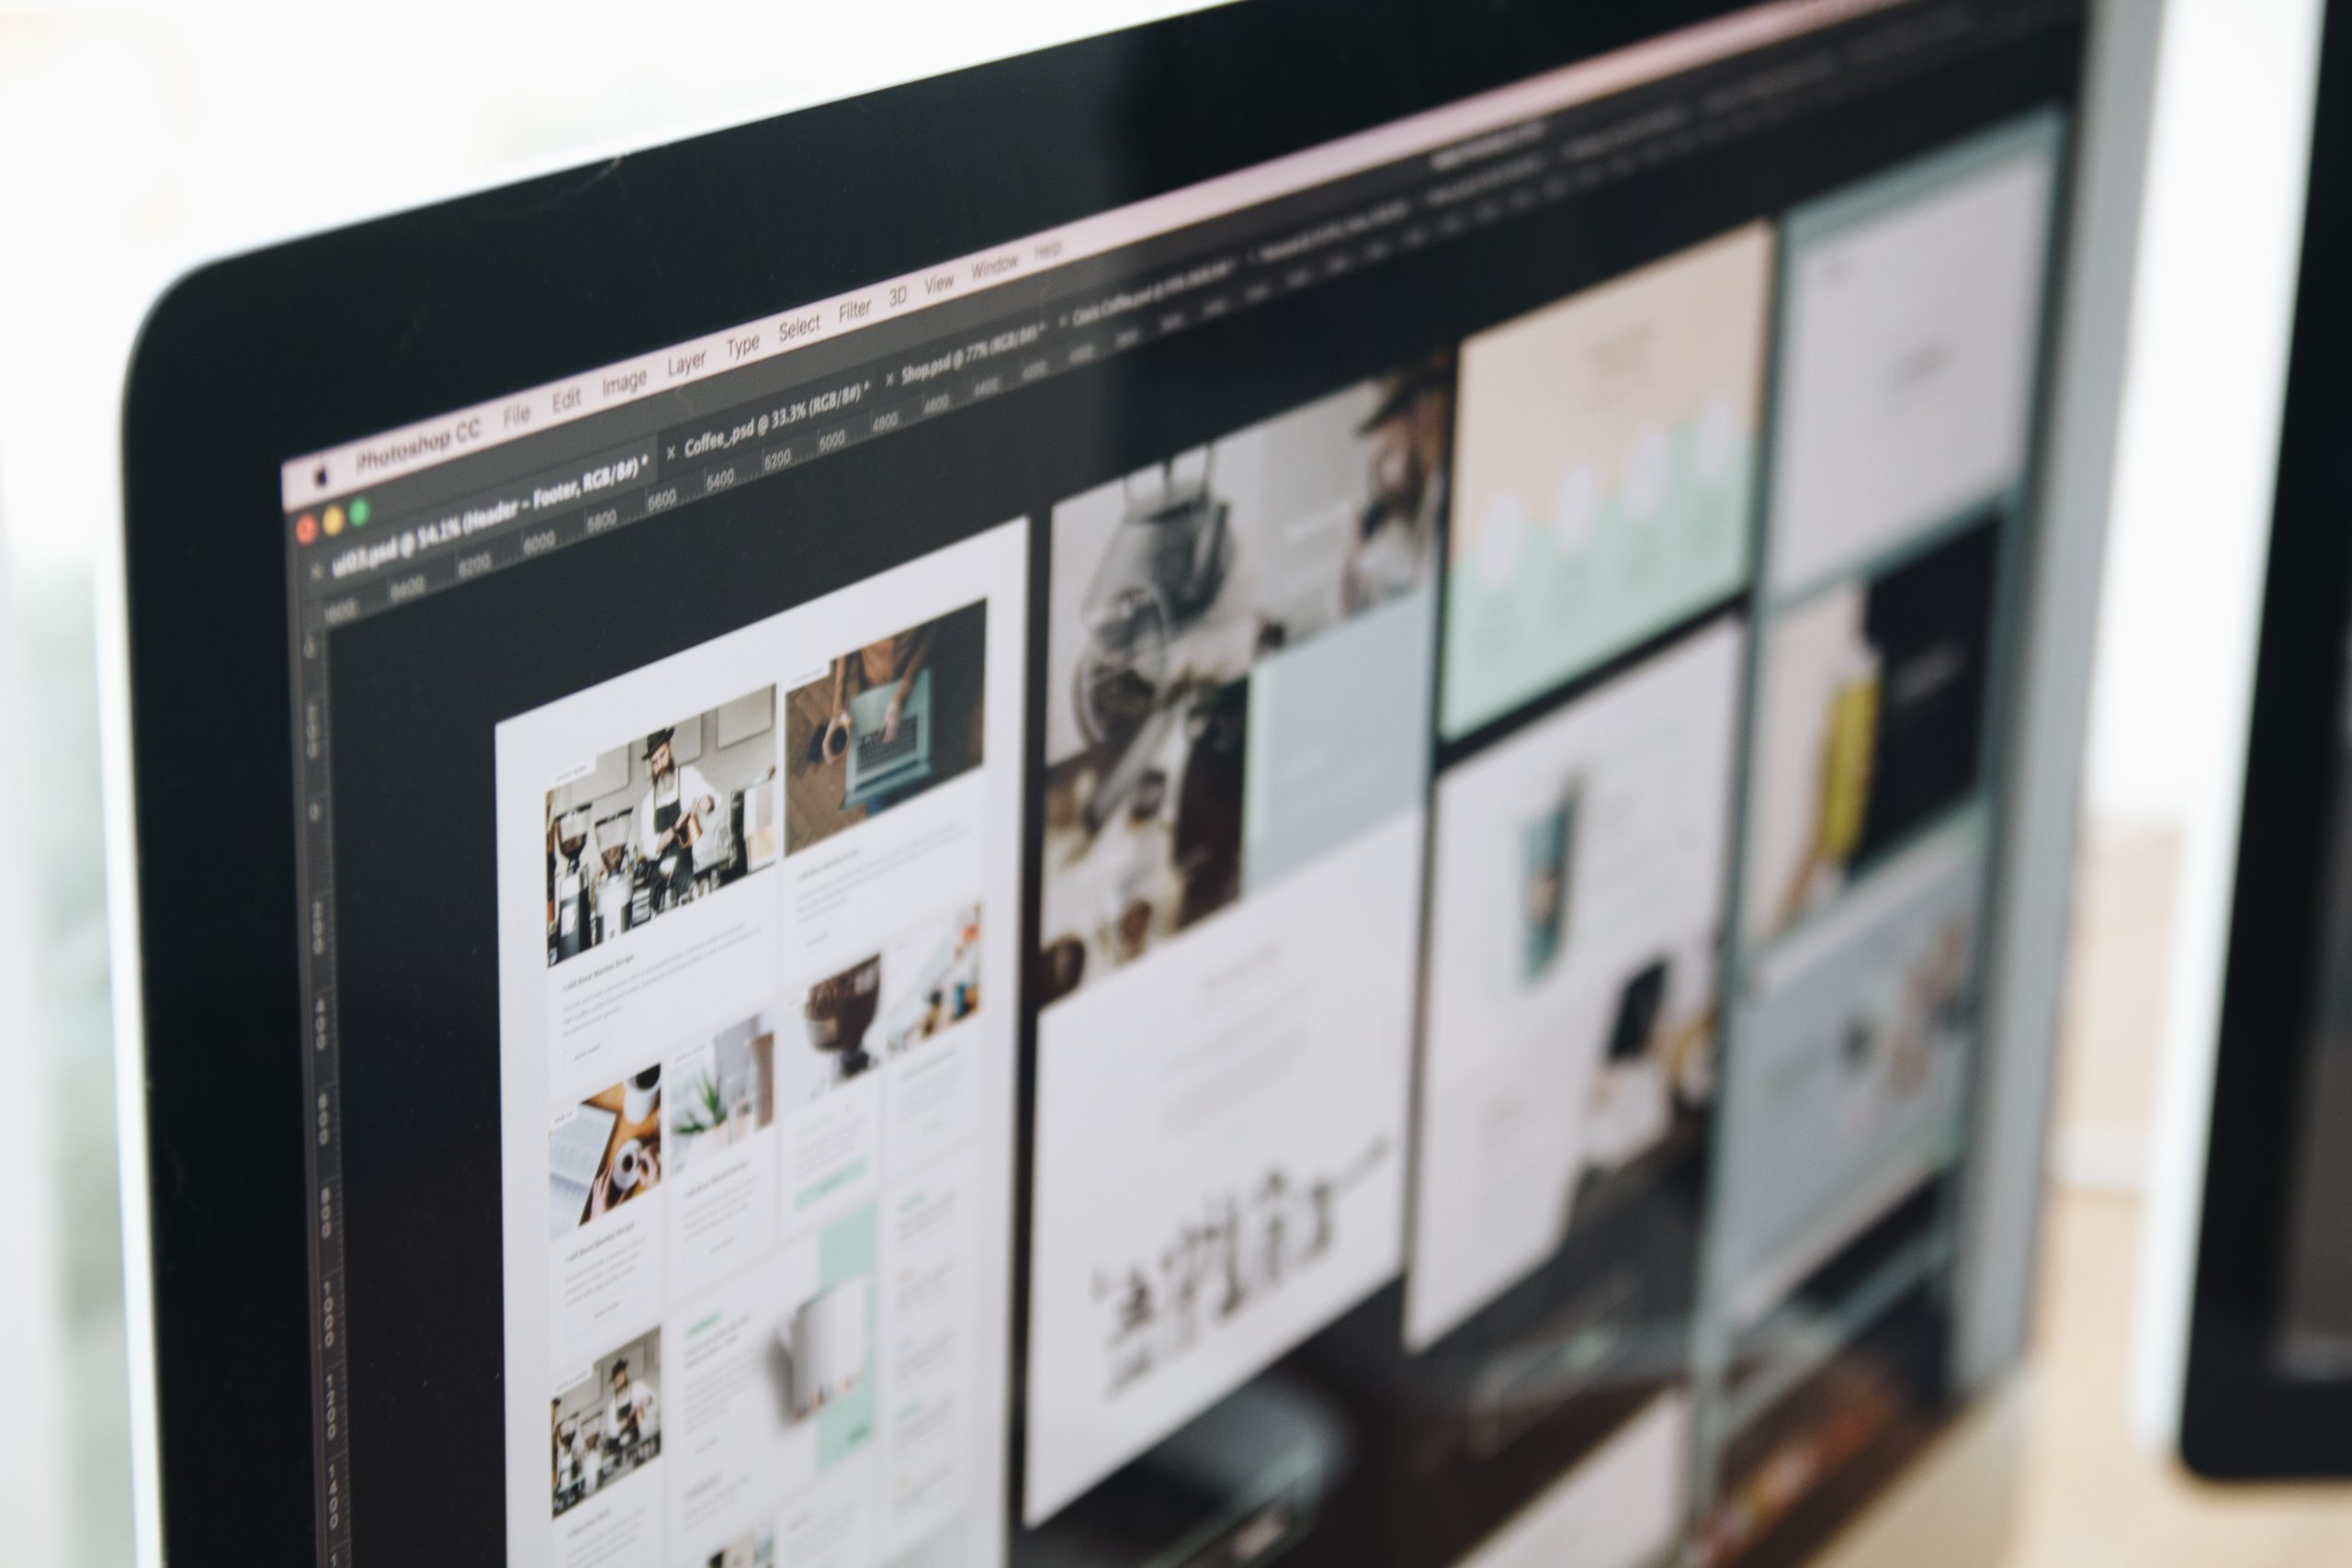 5 simple hacks to improve user experience